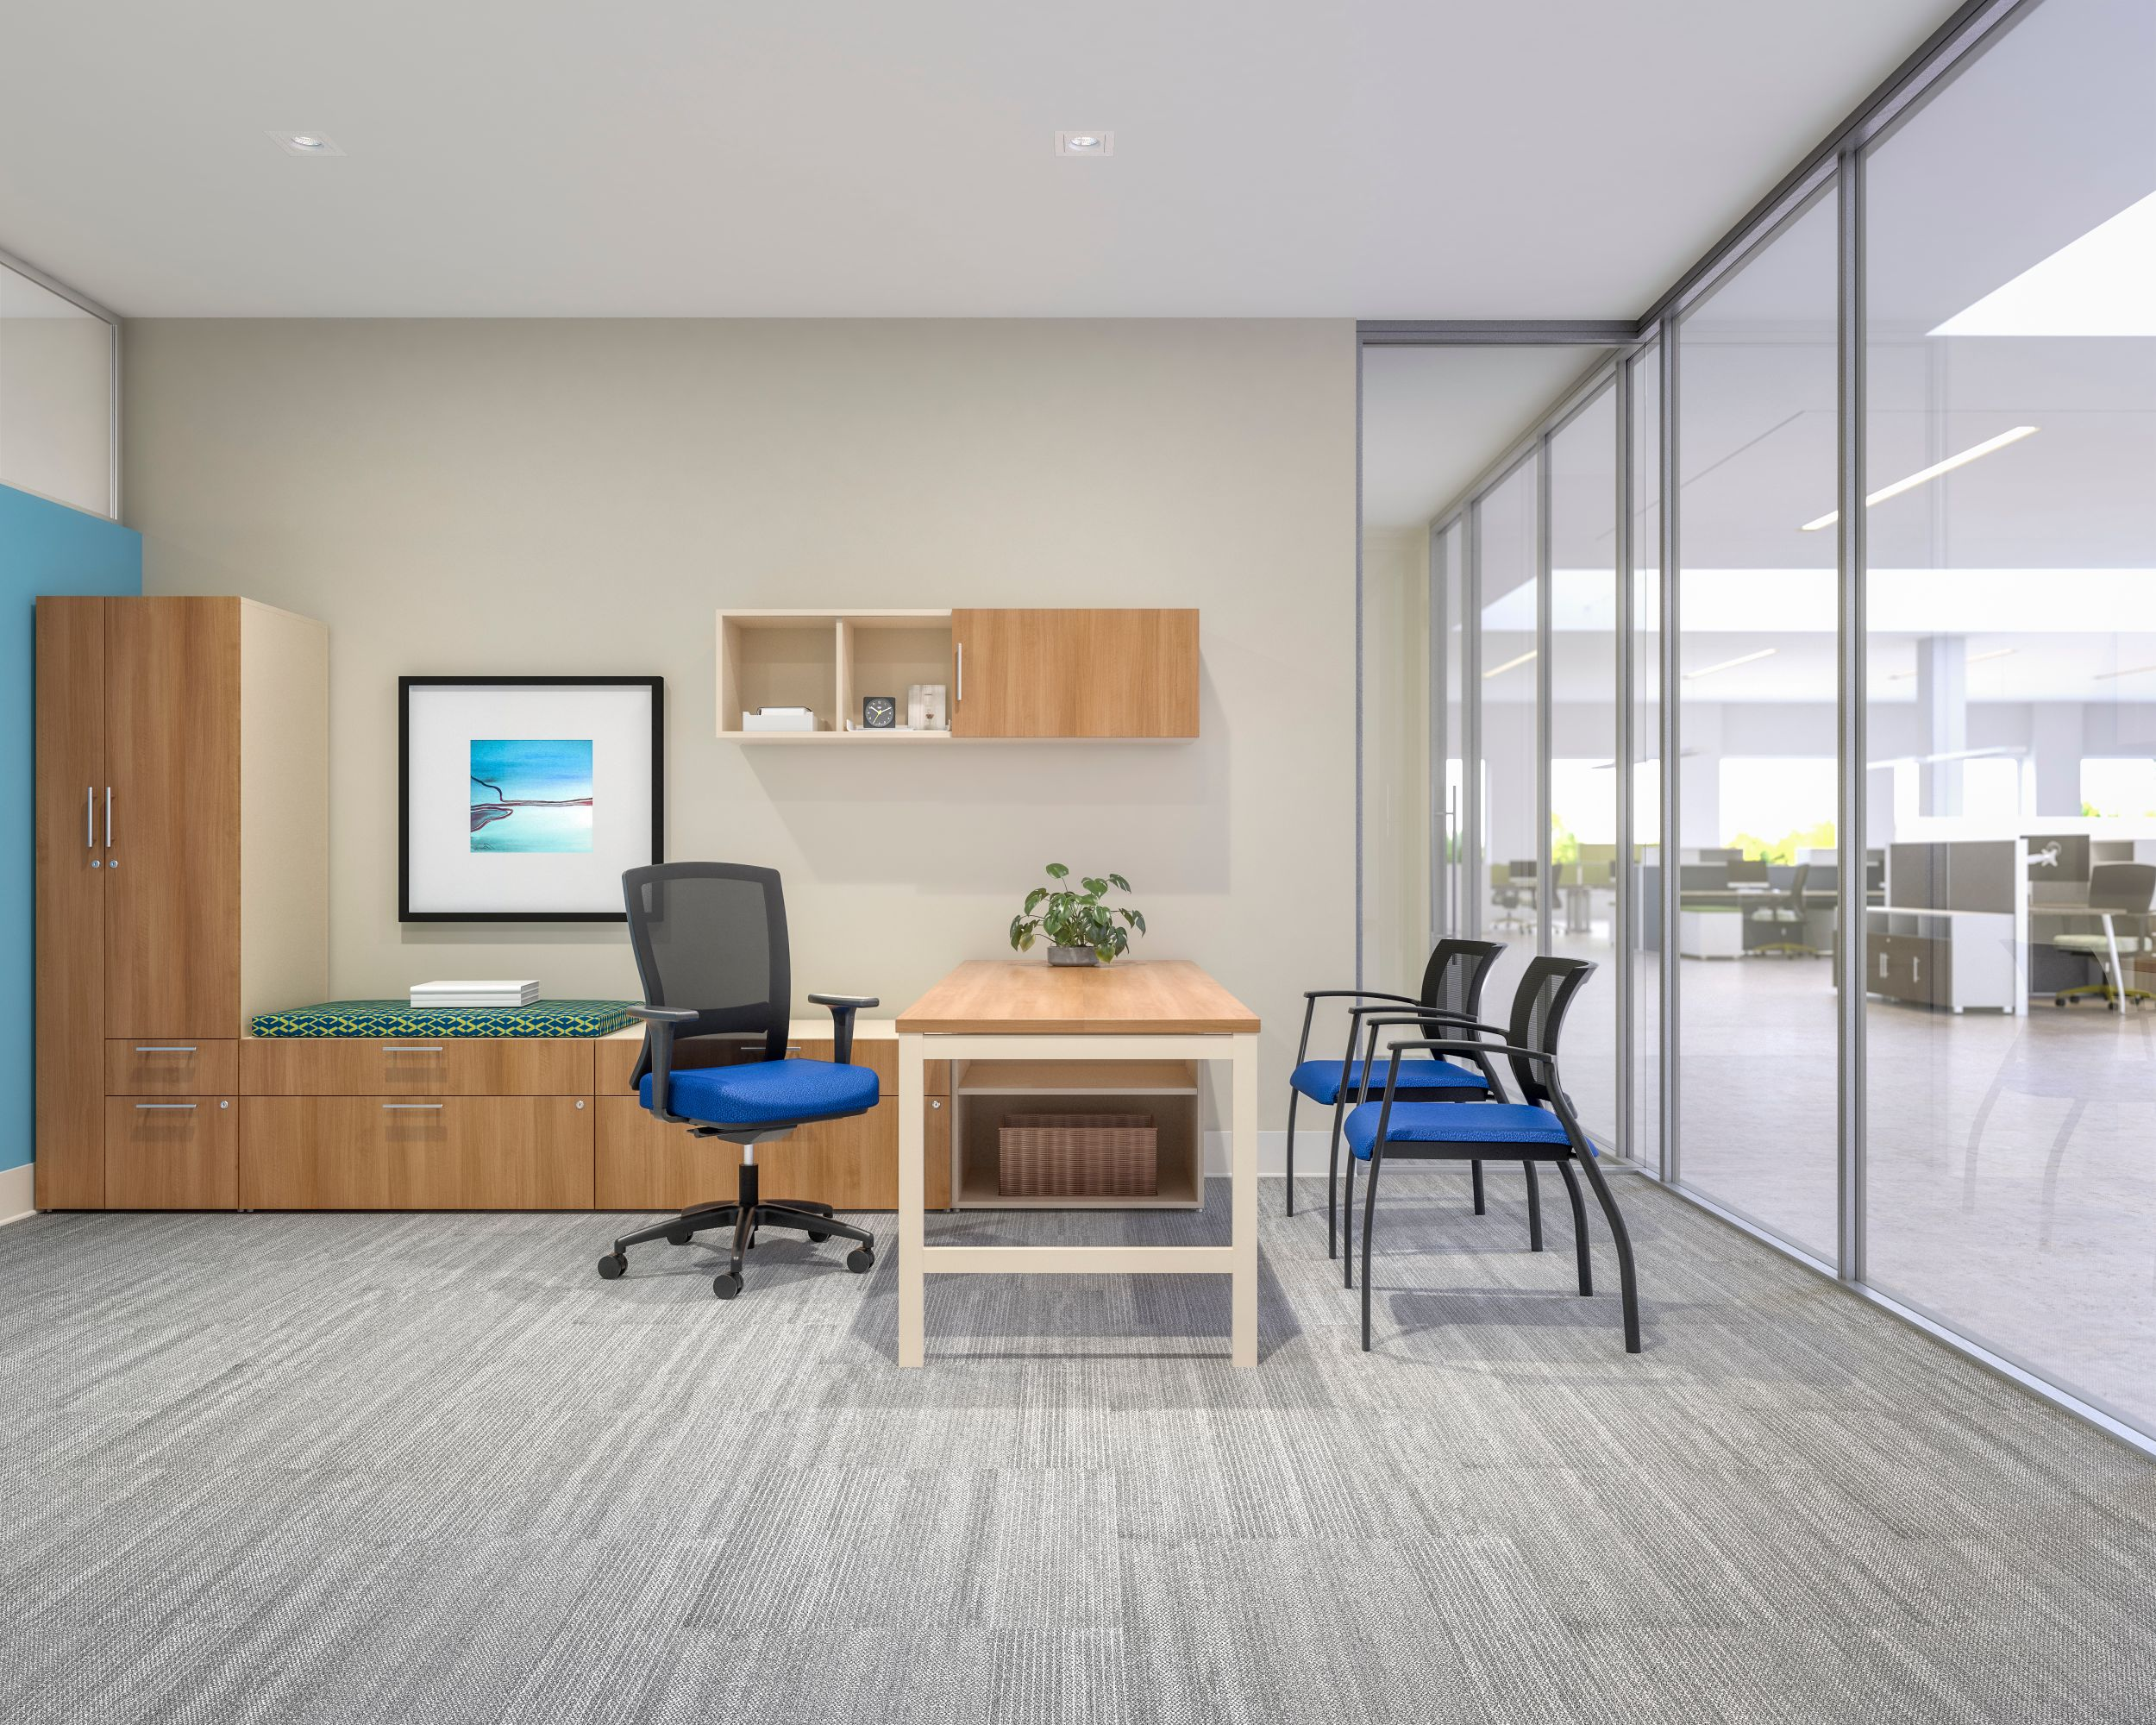 calibrate-extend-private-office-with-natick-and-grafton-seating_md